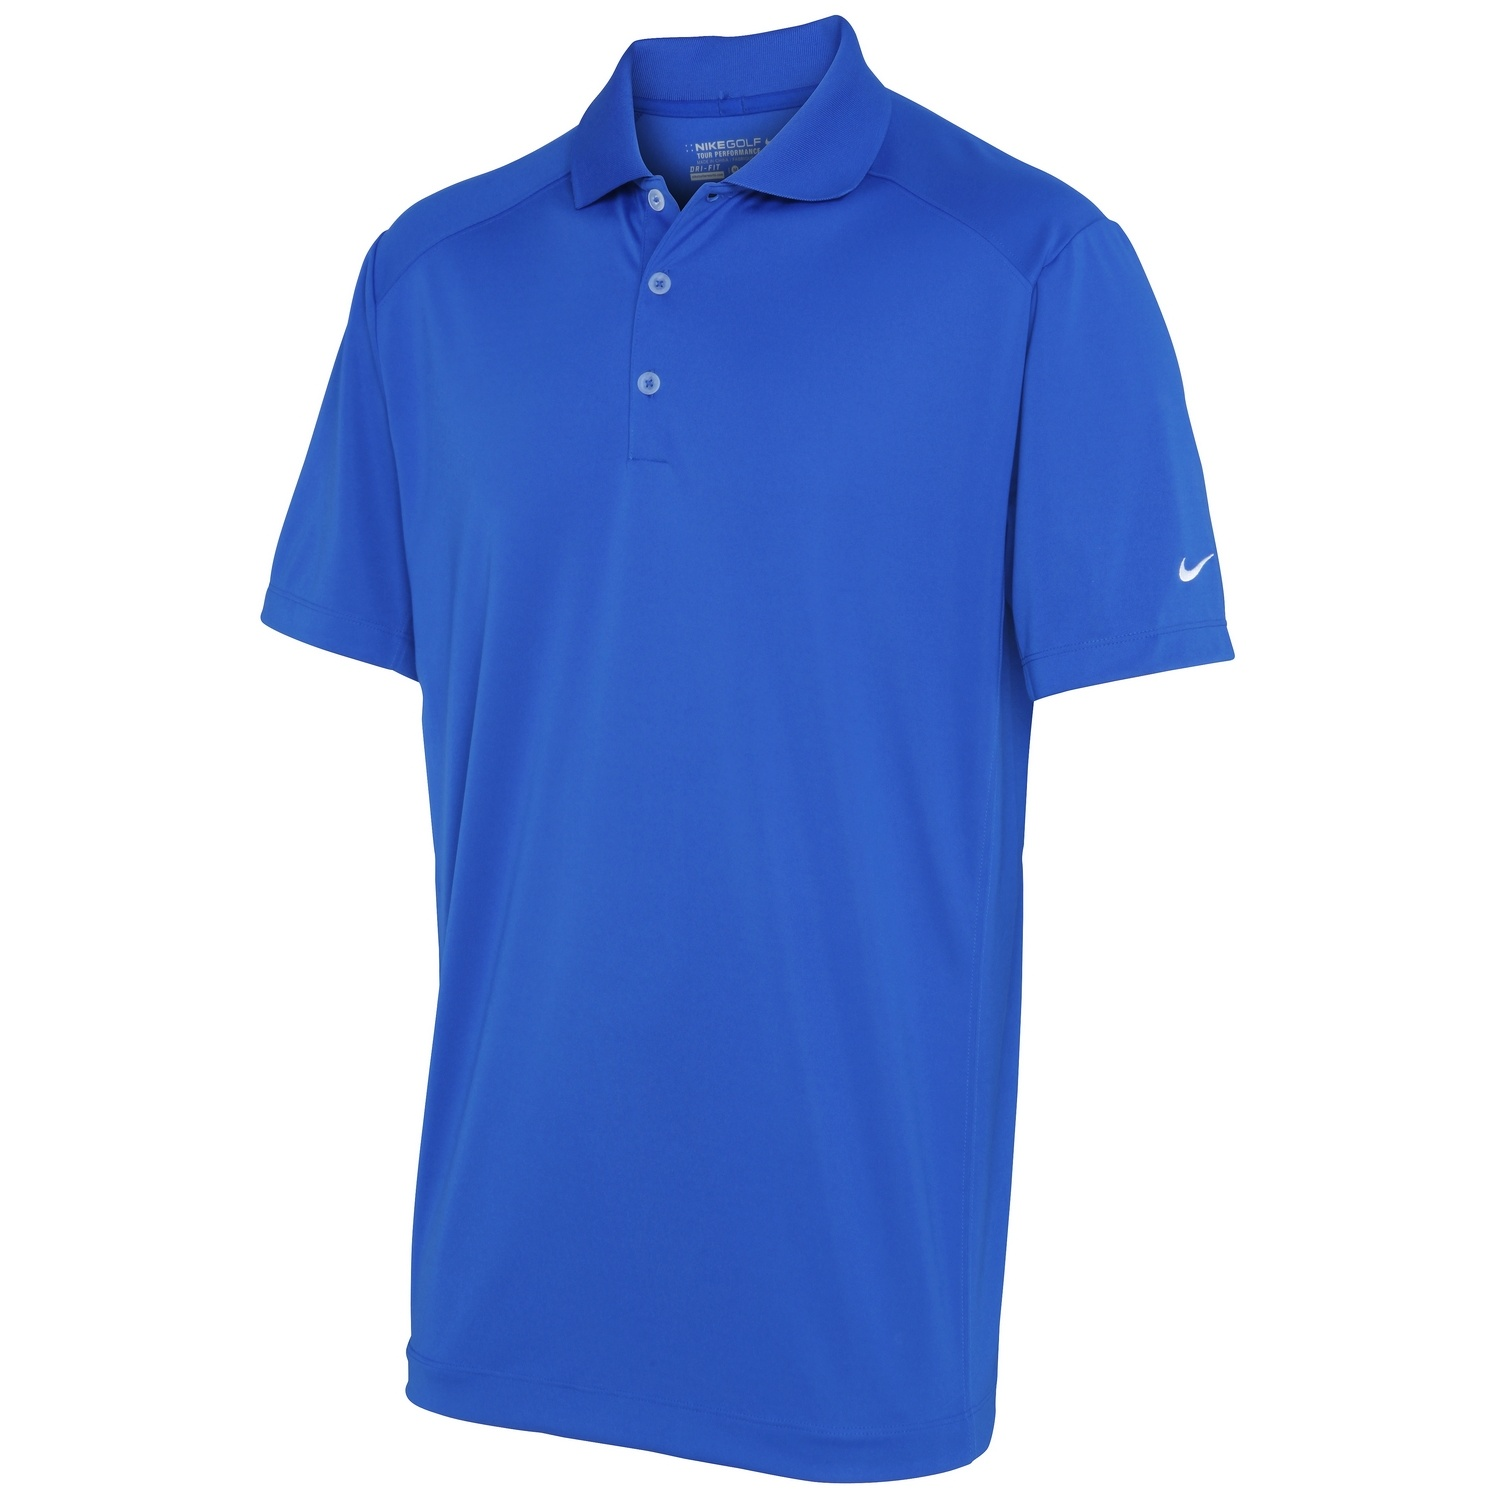 Today, the unassuming polo shirt captures a wide market, giving a necessary edge to sportswear fashion. You may call it a golf shirt or tennis shirt, but everyone knows the polo shirt is the go-to comfort shirt for smart dressing. At Hibbett Sports, we carry the sharpest .